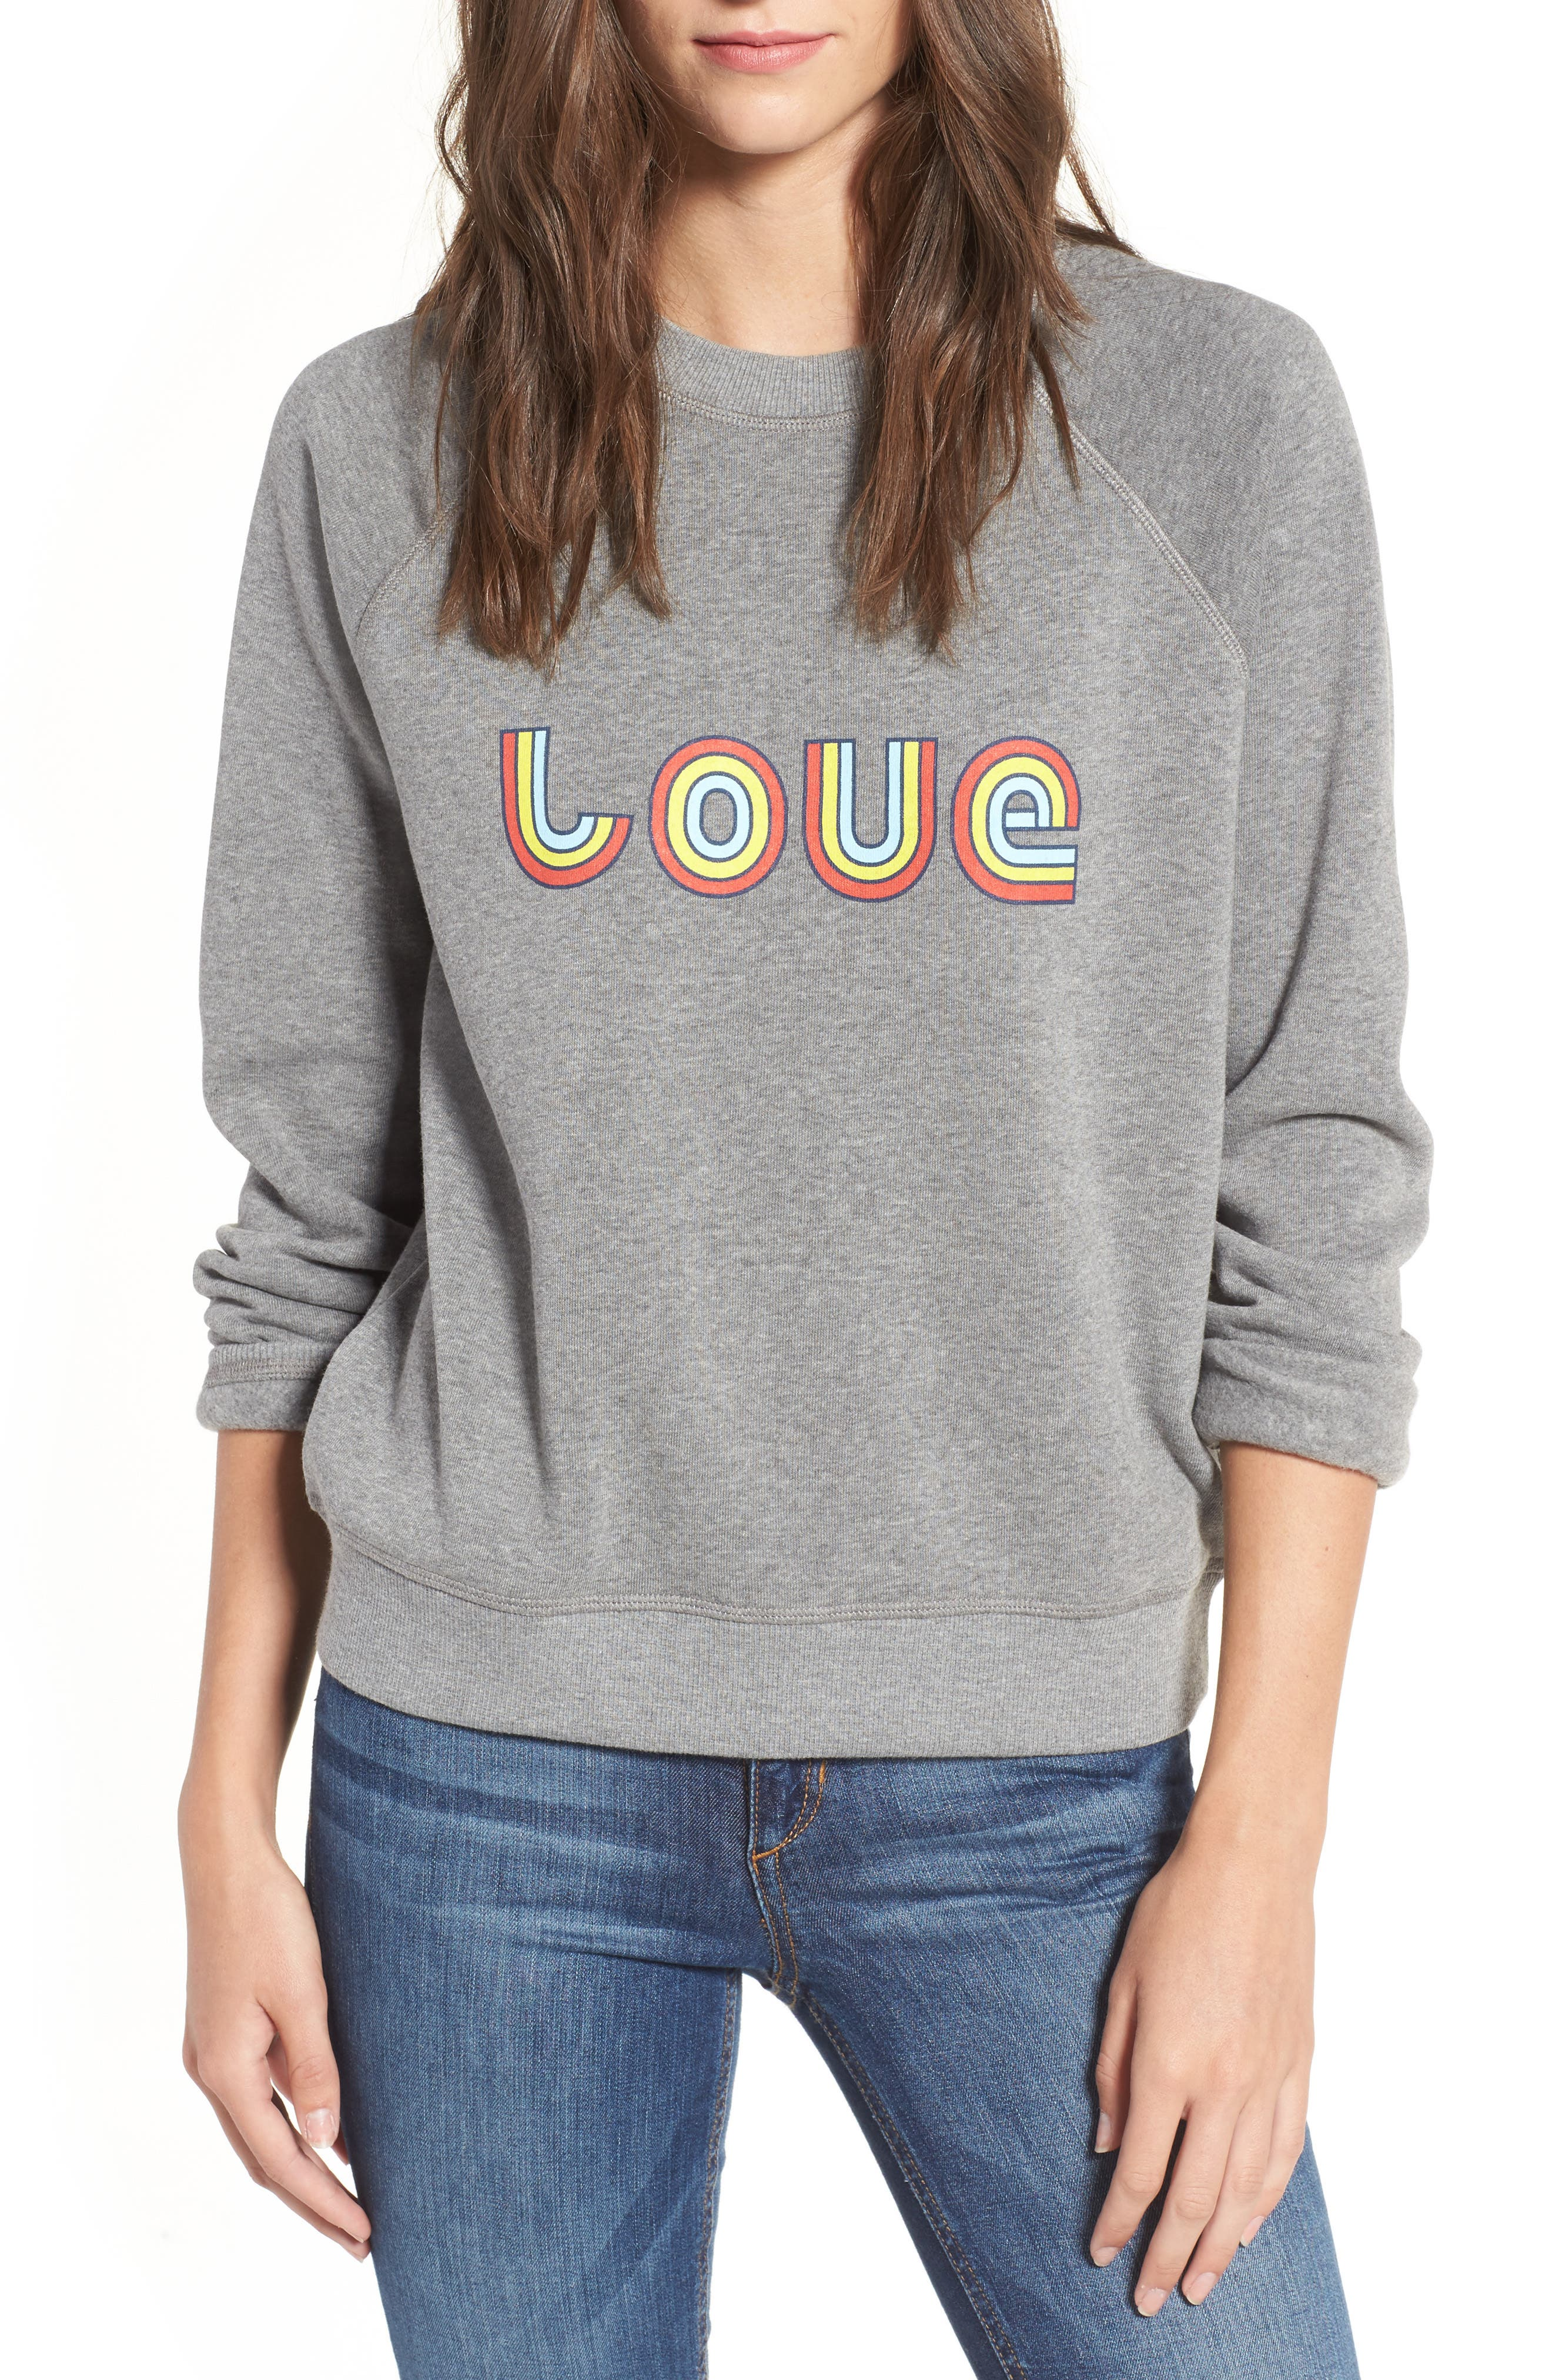 Love Sweatshirt,                             Main thumbnail 1, color,                             030